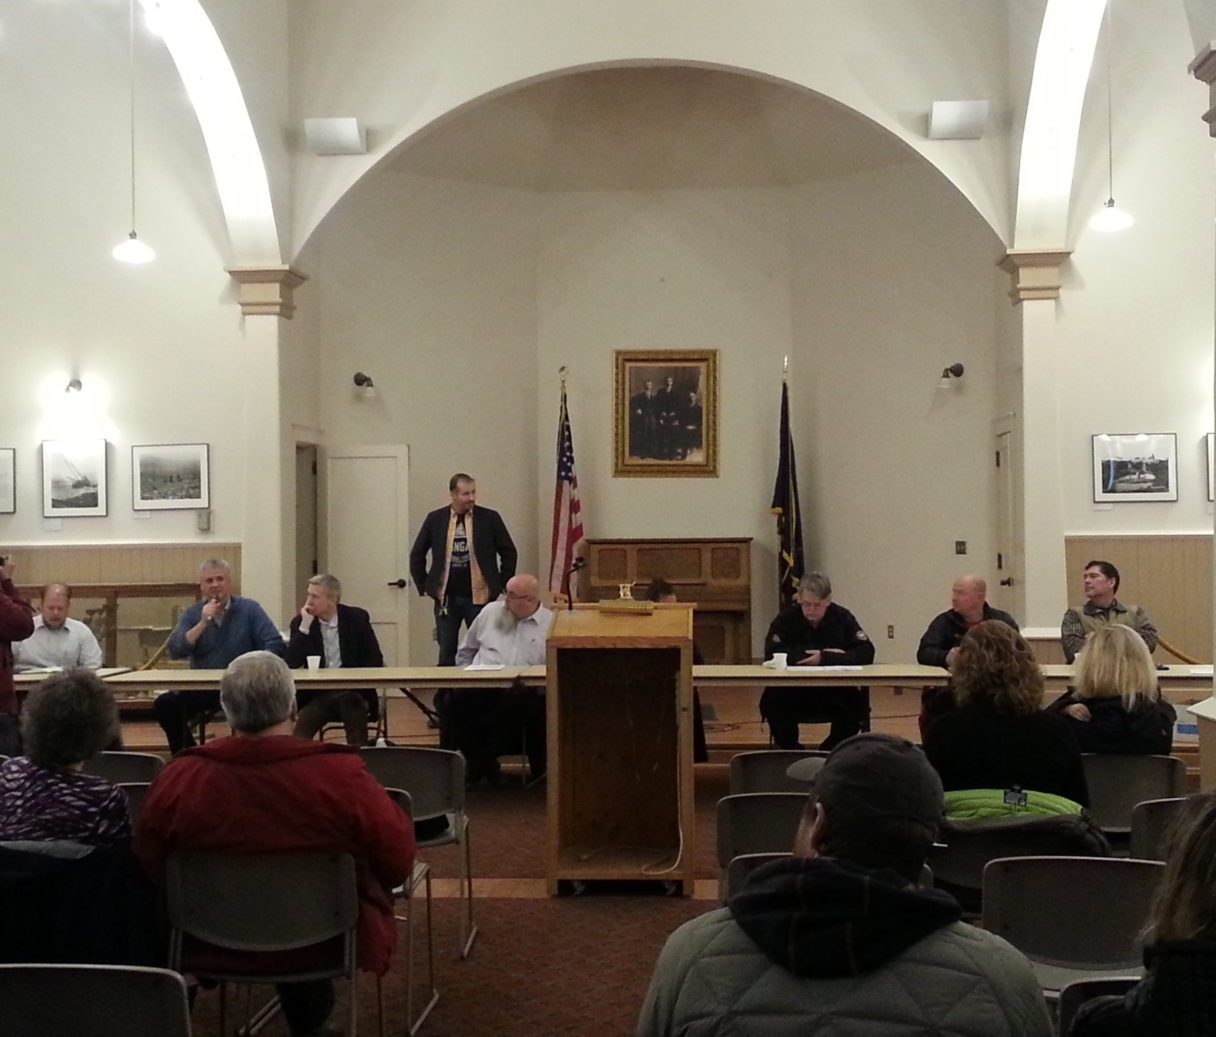 D.O.C. Commissioner Dean Williams, AMCC Superintendent Sandy Martinson, Nome City Councilmen, and others gathered for a town hall meeting regarding sex offenders being housed at Seaside. Photo Credit: Davis Hovey, KNOM (2017)